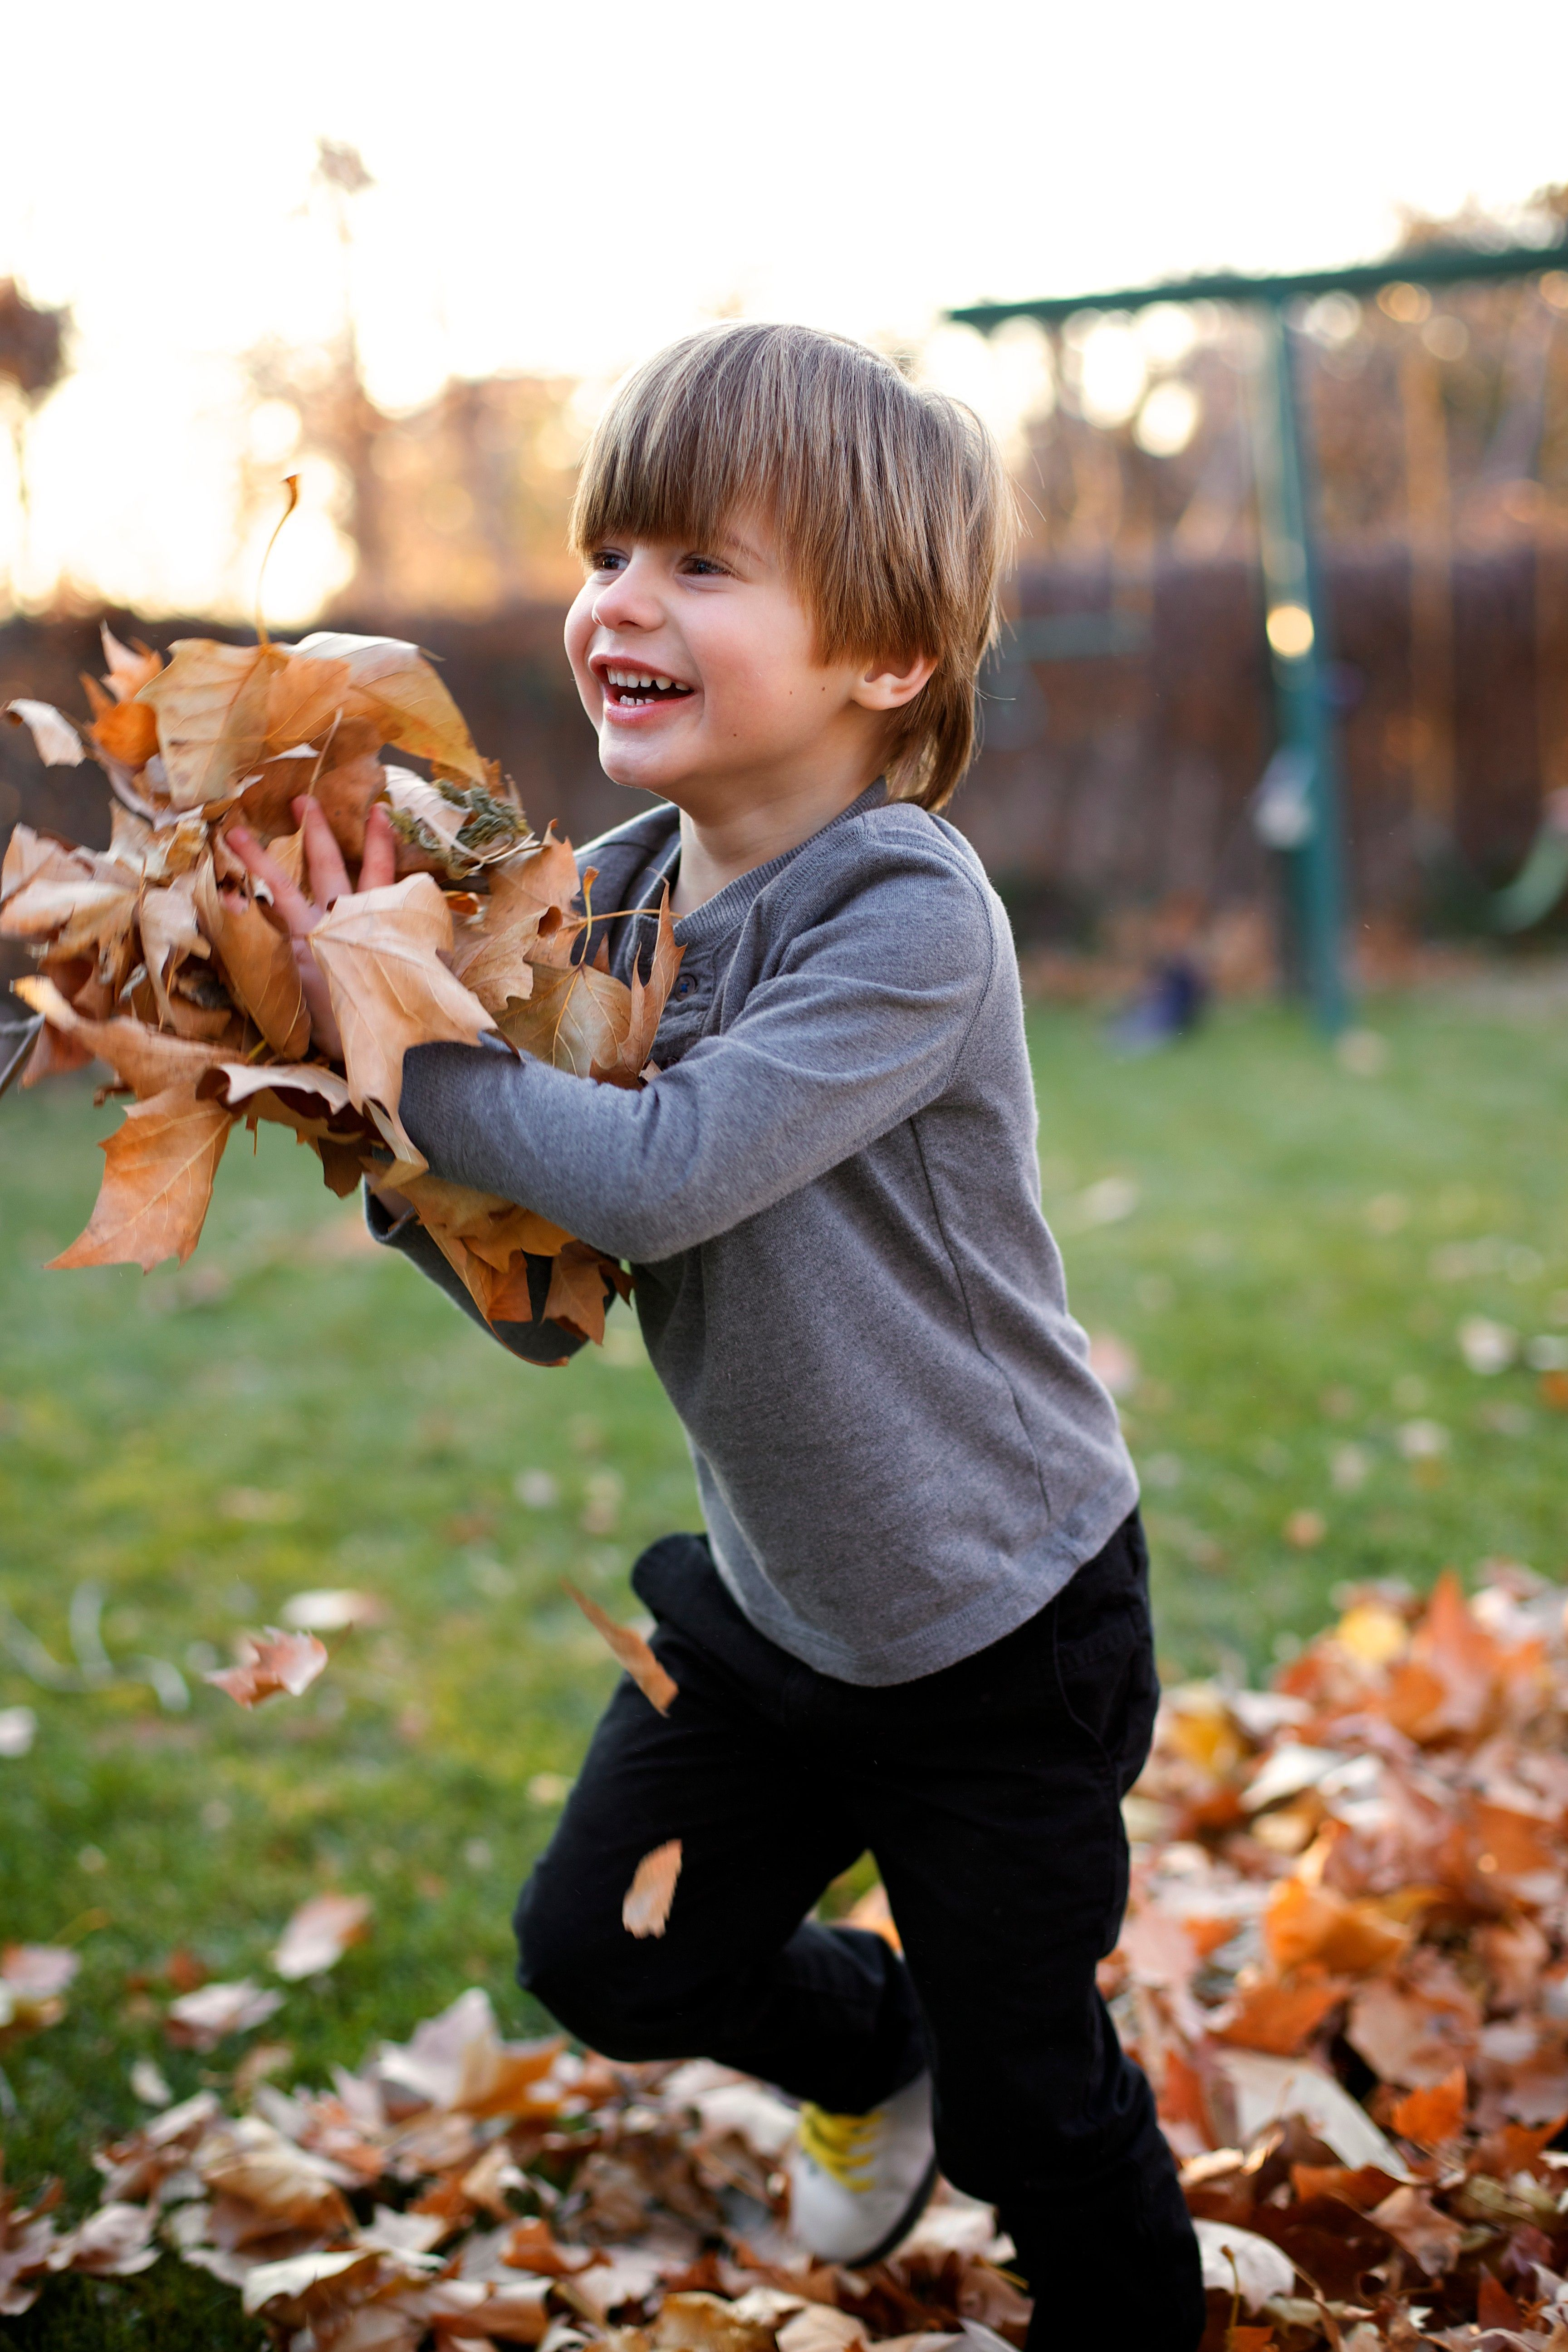 A young boy playing and running with a pile of leaves in his hands.